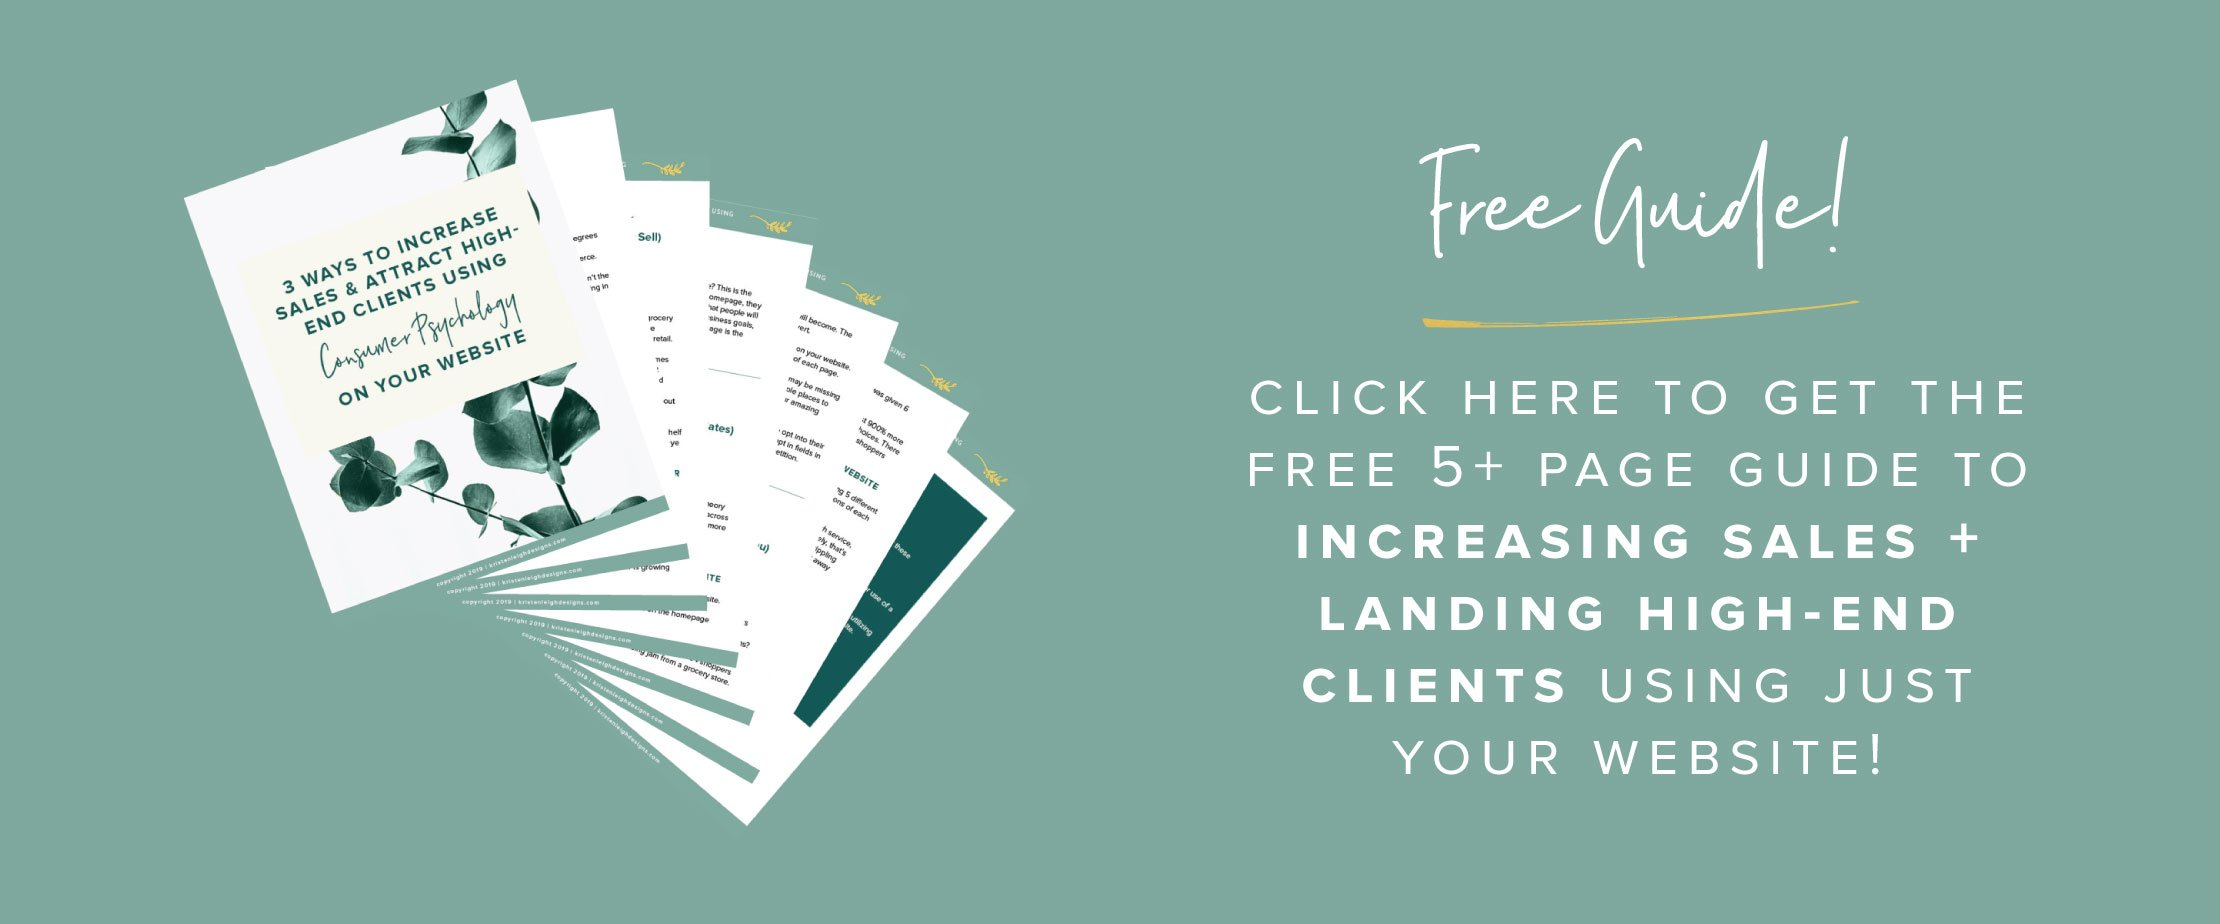 Kristen Leigh | WordPress Web Design Studio | Website Tips | Free Guide! 3 Simple Website Updates to Increase Sales and Land High-End Clients